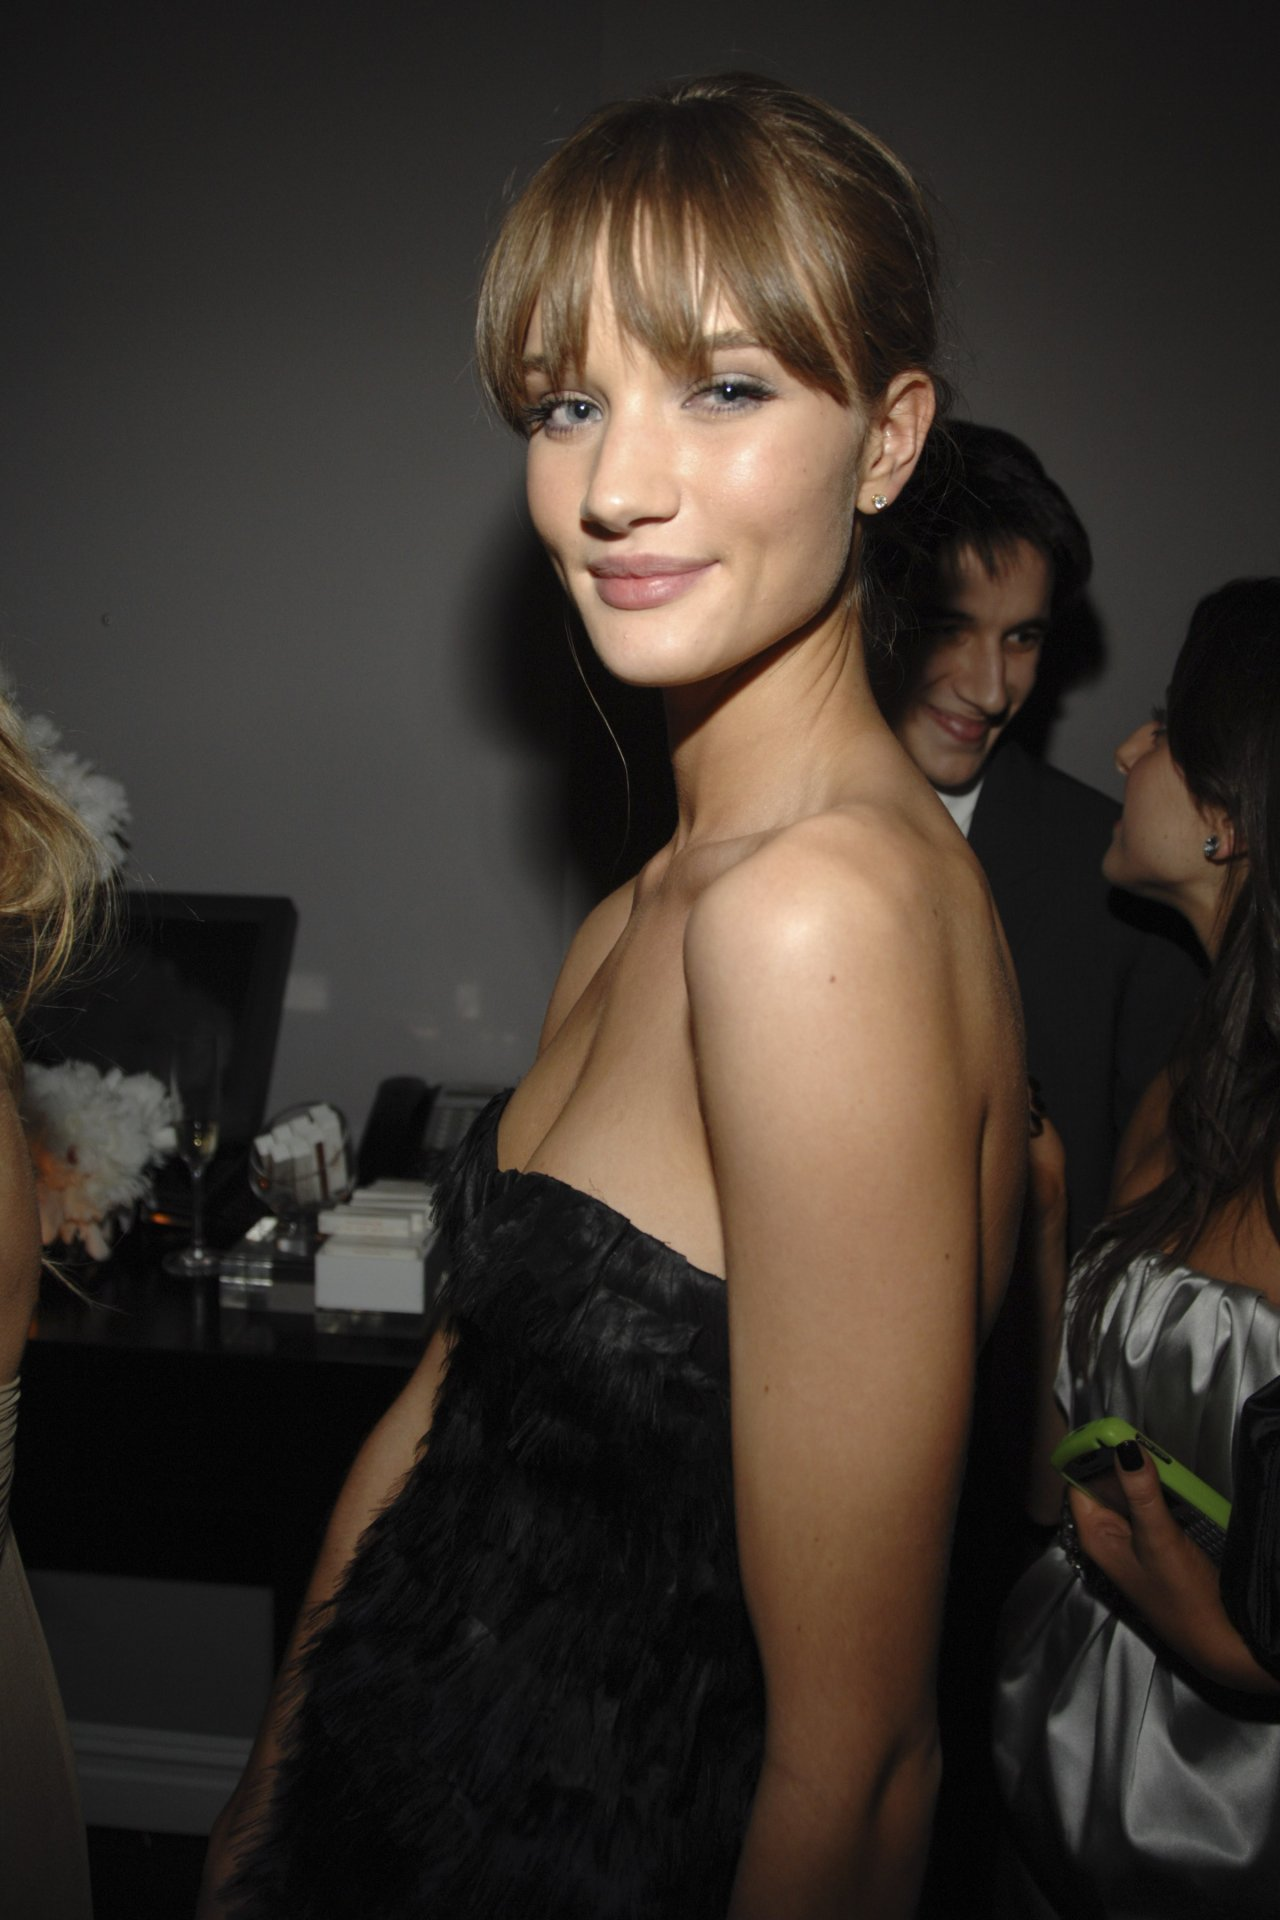 Rosie huntington-whiteley leaked - Thefappening.pm